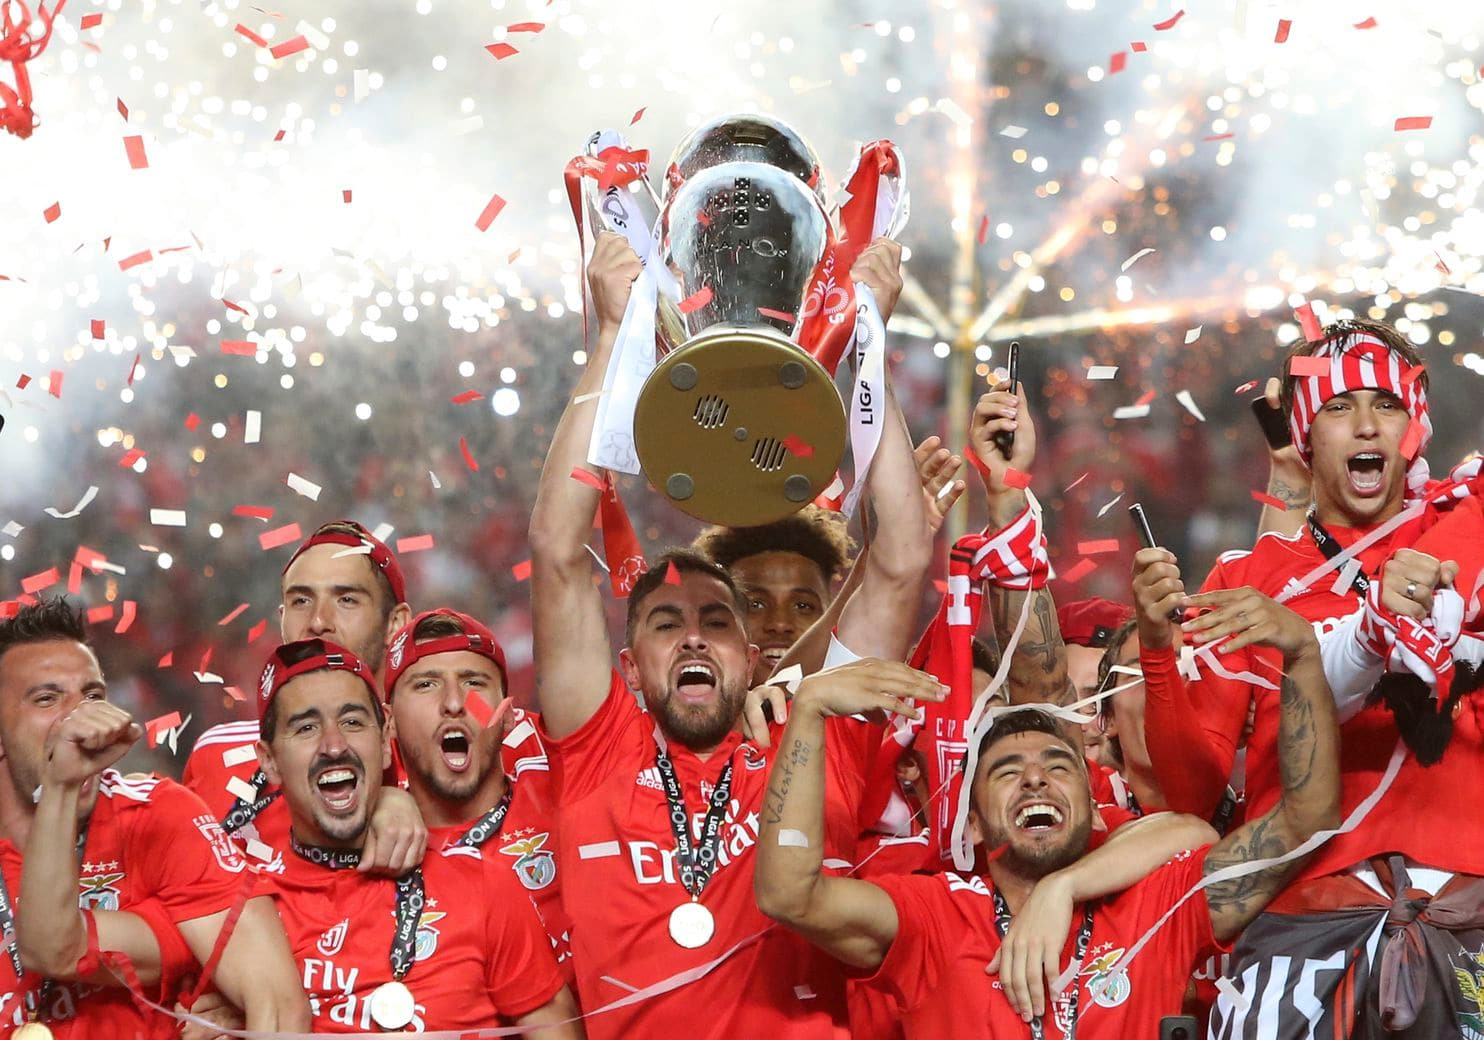 Benfica of Lisbon, Portuguese champions of 2018/19